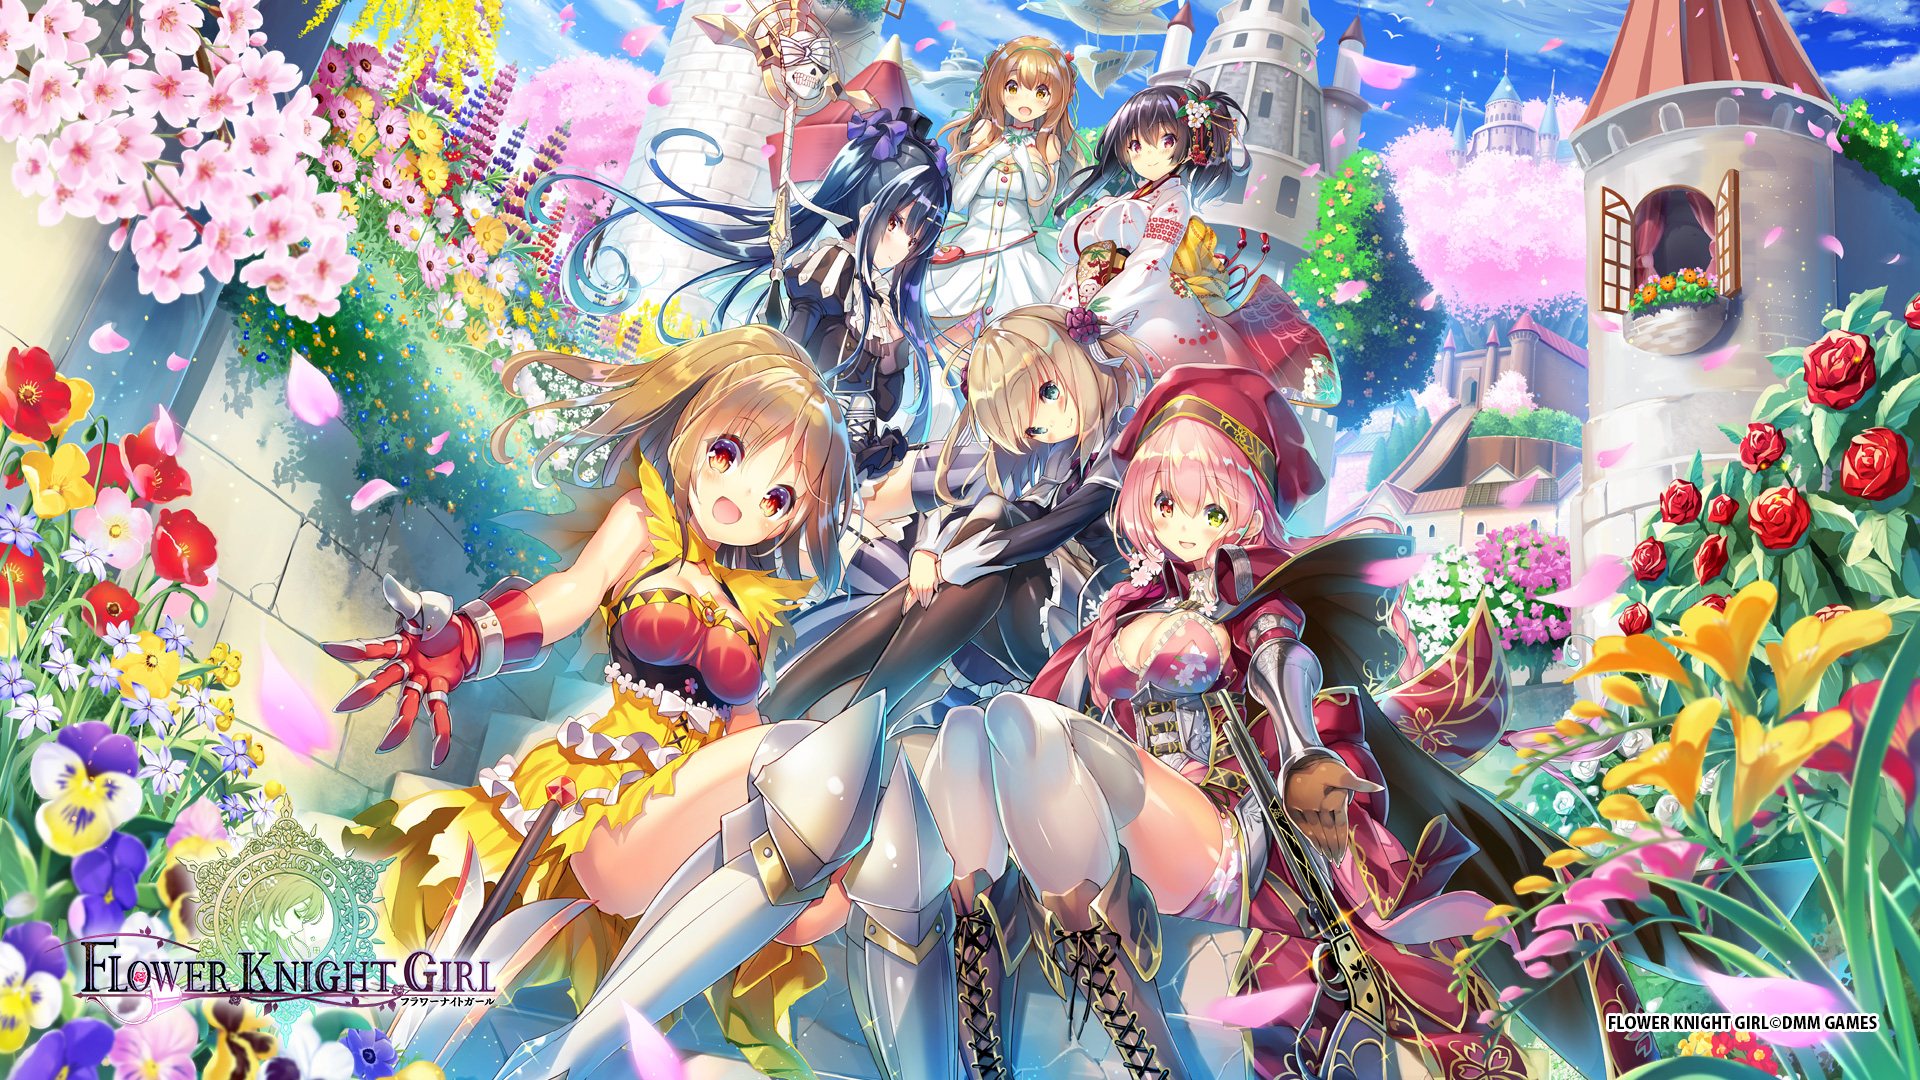 Flower knight rpg is a command rpg featuring 400 female characters who are personified flowers called flower knight the battle runs on auto